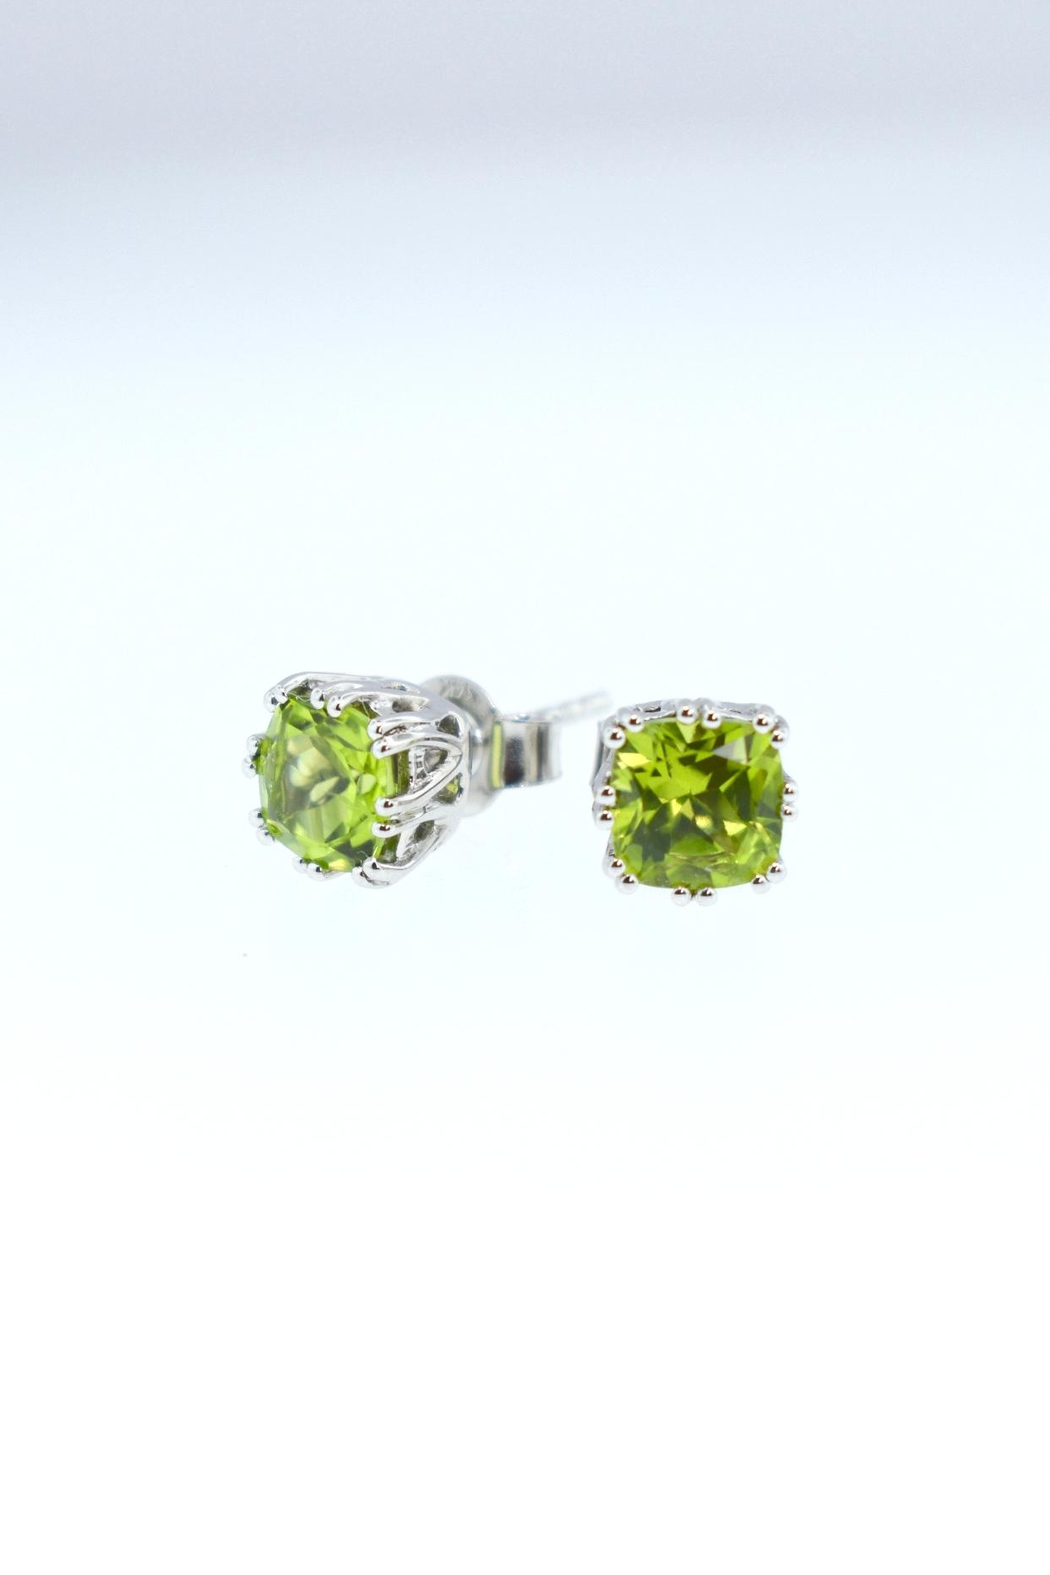 shop jewellery and orange the chaumet scale abeille upscale peridot product high earrings yellow sapphire false subsampling crop